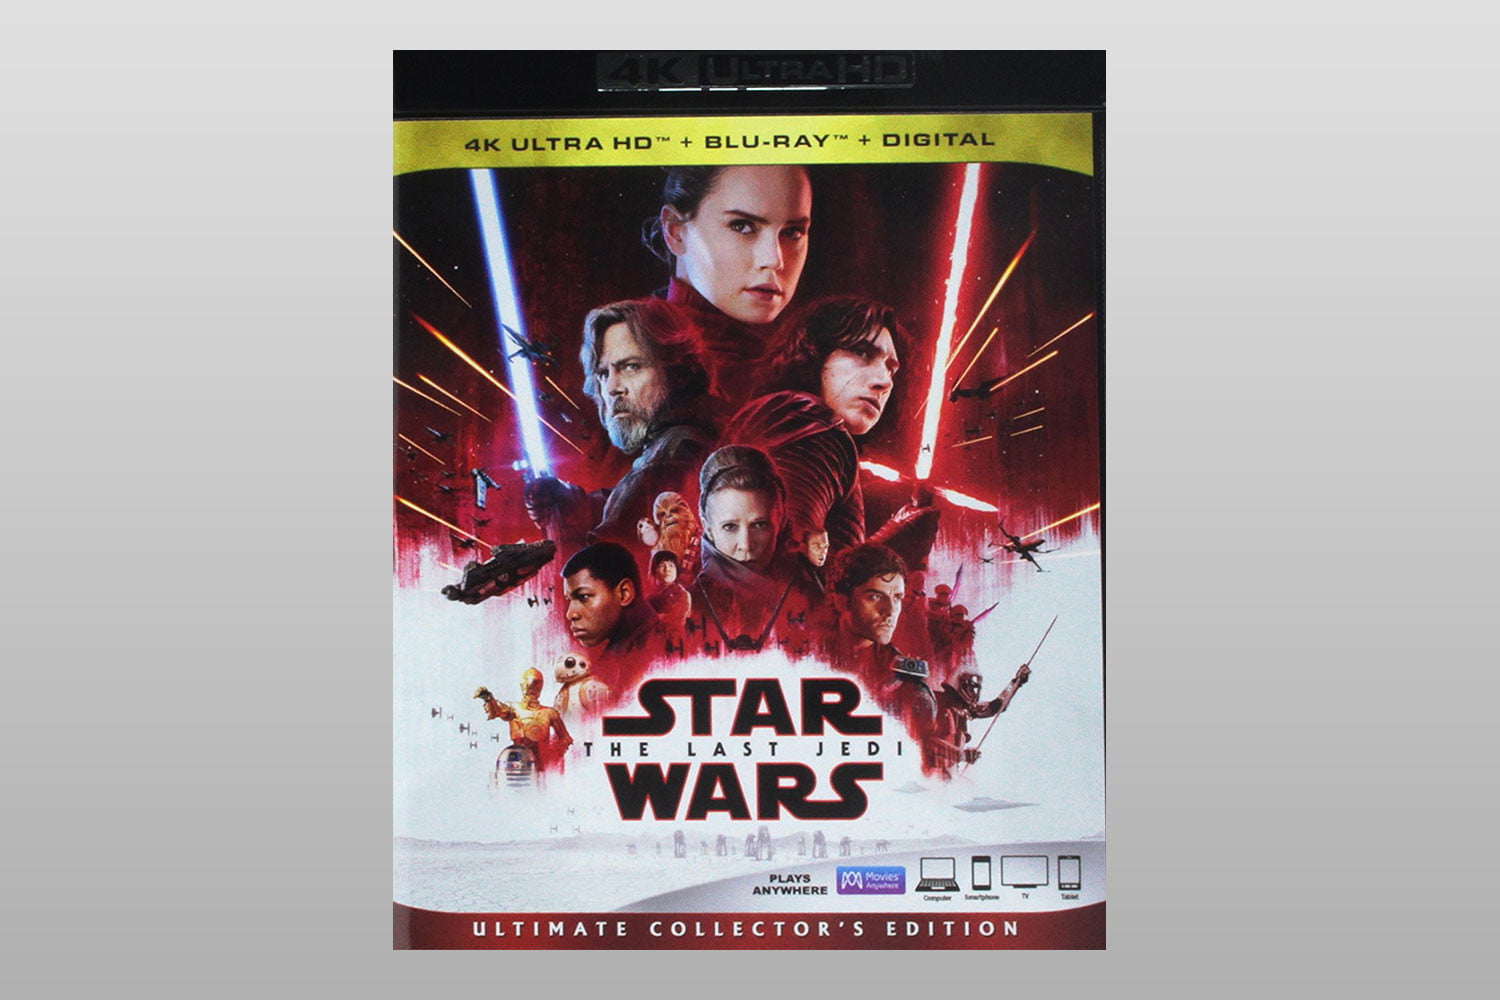 best 4k ultra hd movies to show off your home theater star wars the last jedi blu ray